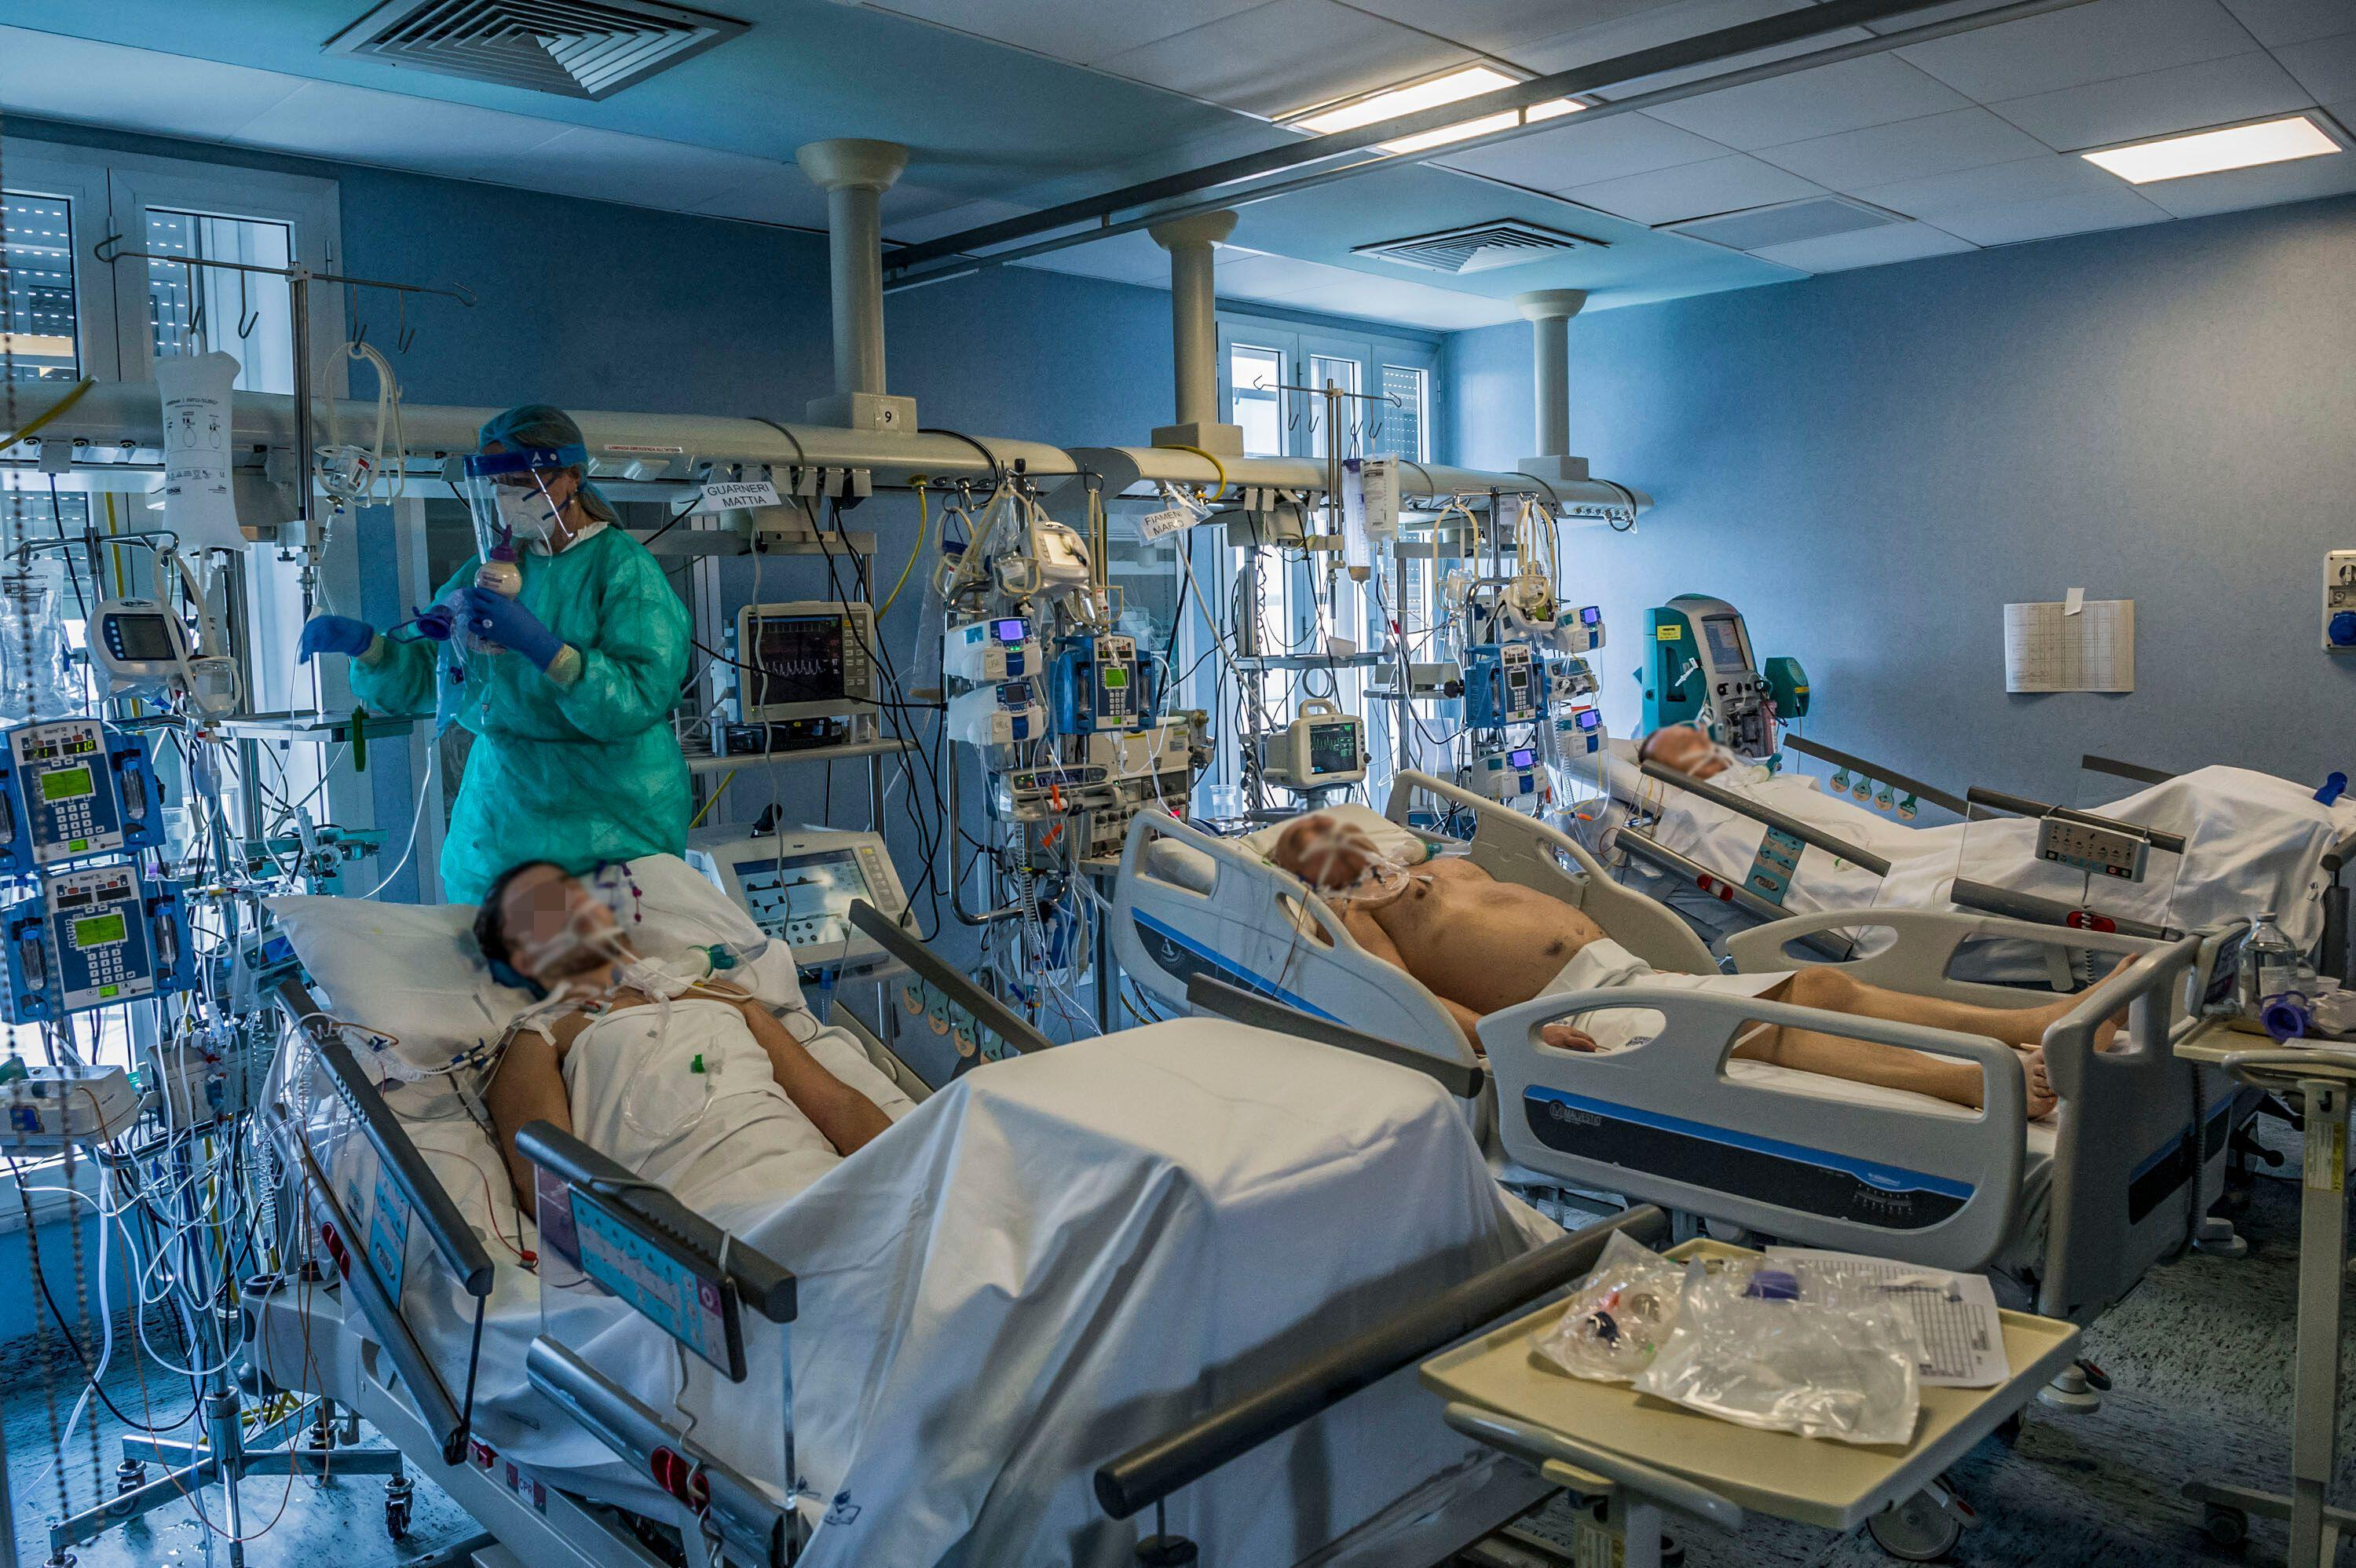 Multiple patients lie in wait of life-saving treatment